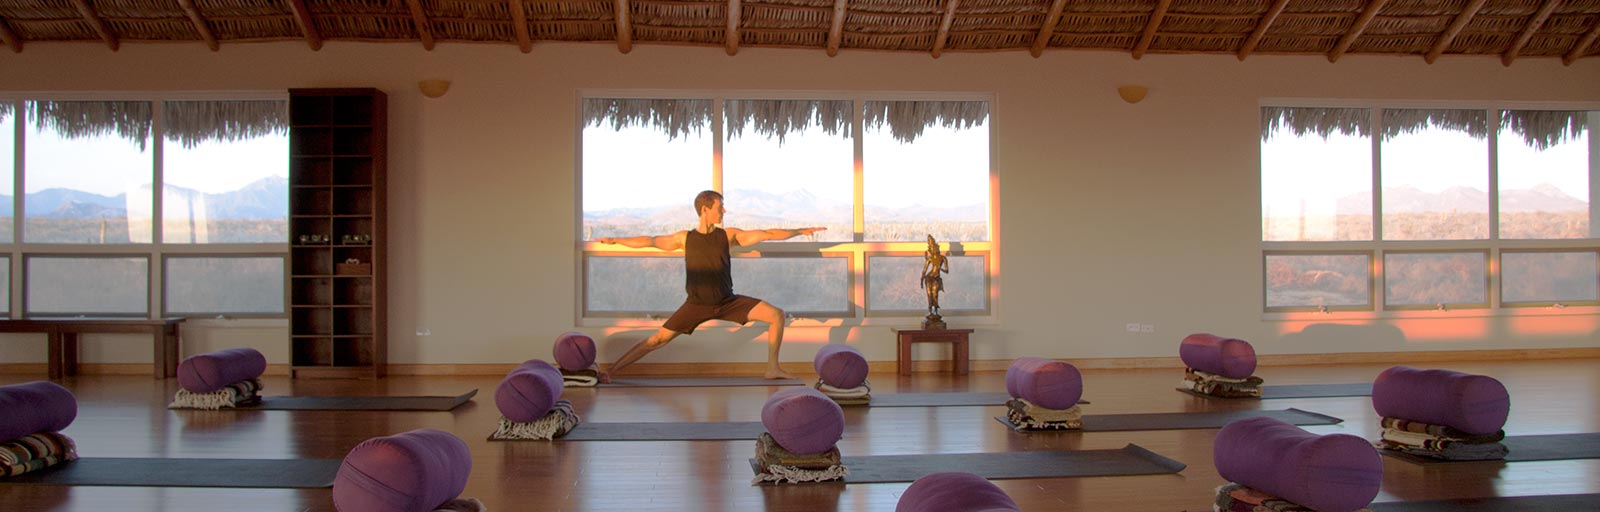 Mexico Yoga Retreat Yoga Studio: Practicing Yoga at Sunset